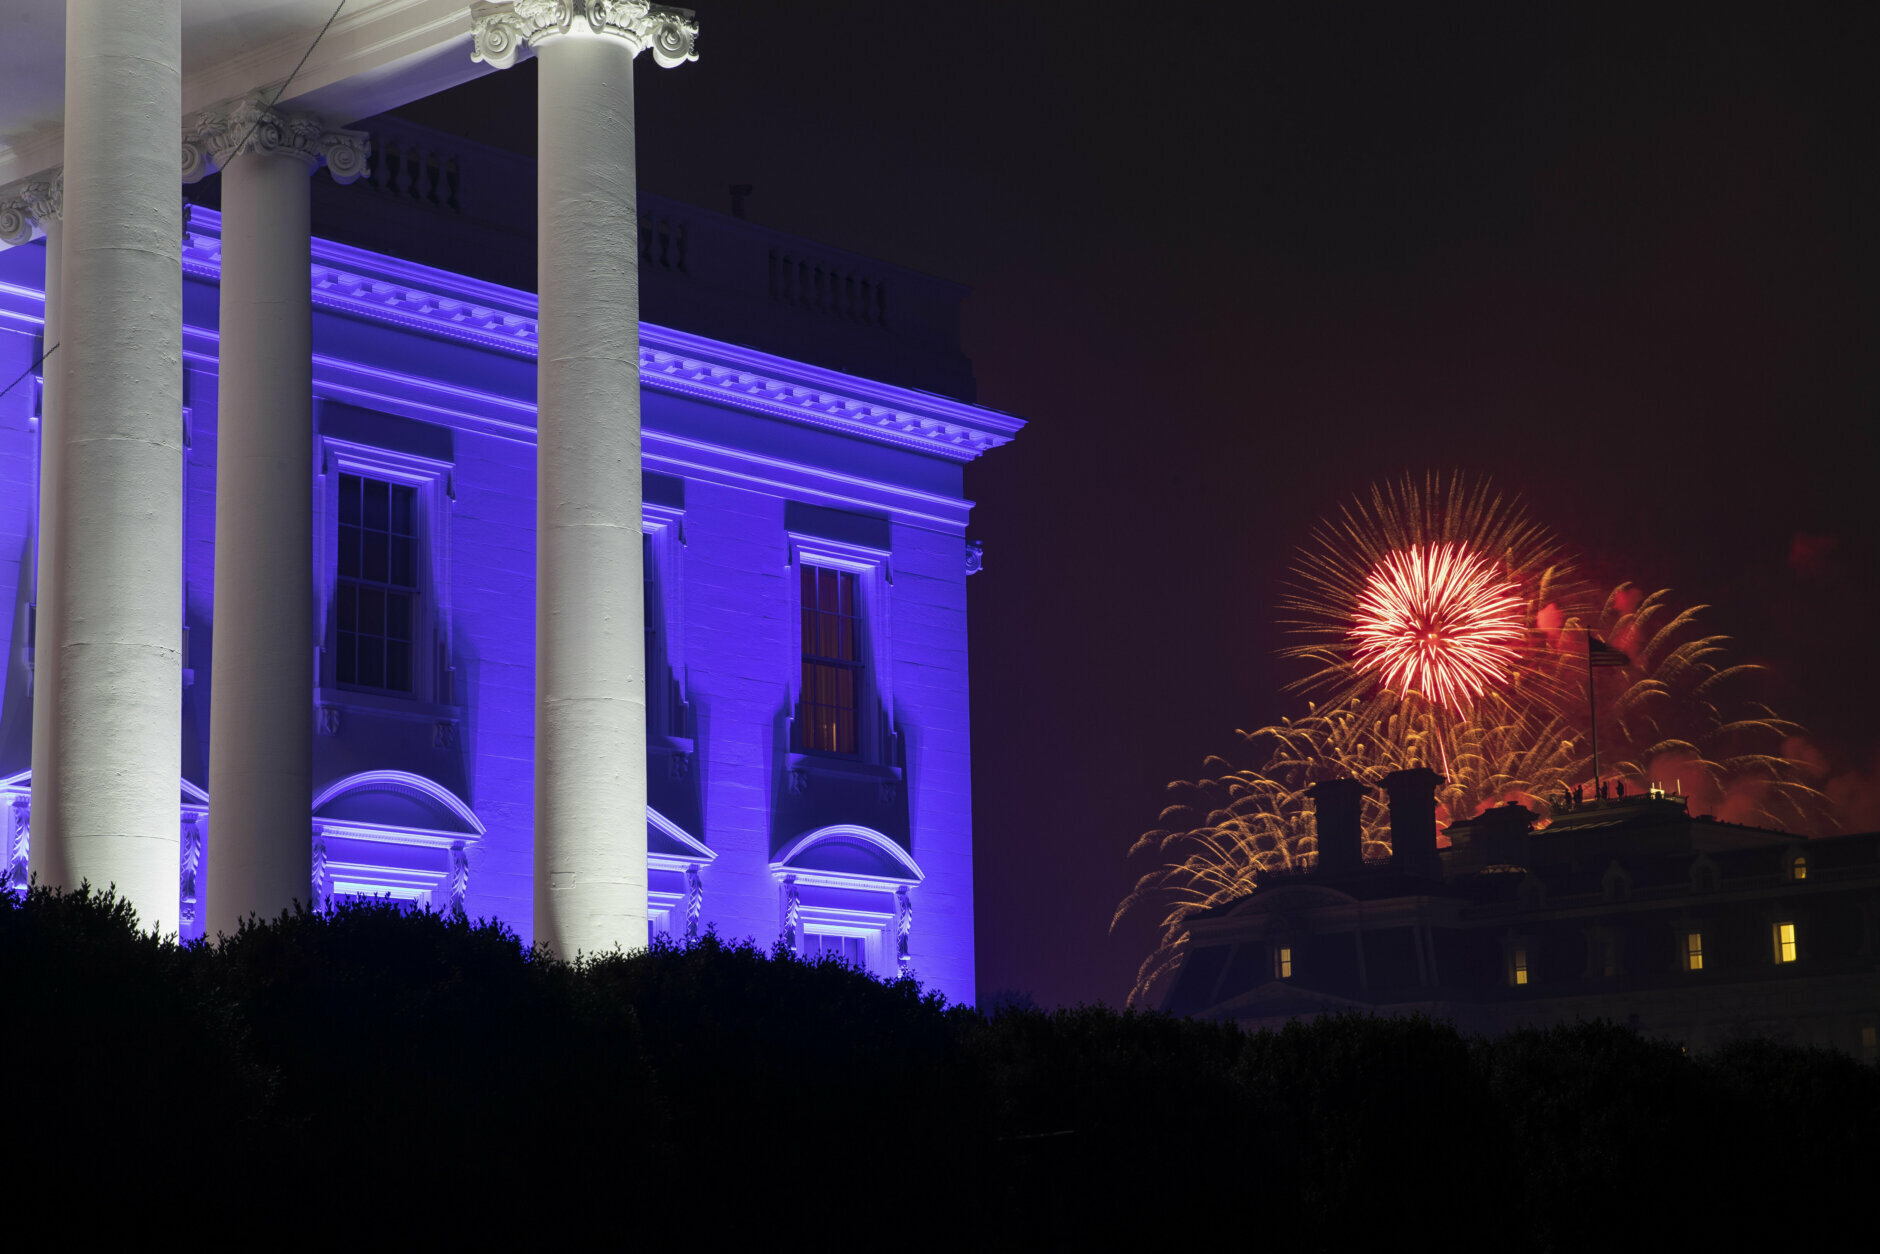 """The White House is illuminated with red, white and blue lights as fireworks burst in the distance during a """"Salute to America"""" event Saturday, July 4, 2020, in Washington. (AP Photo/Alex Brandon)"""